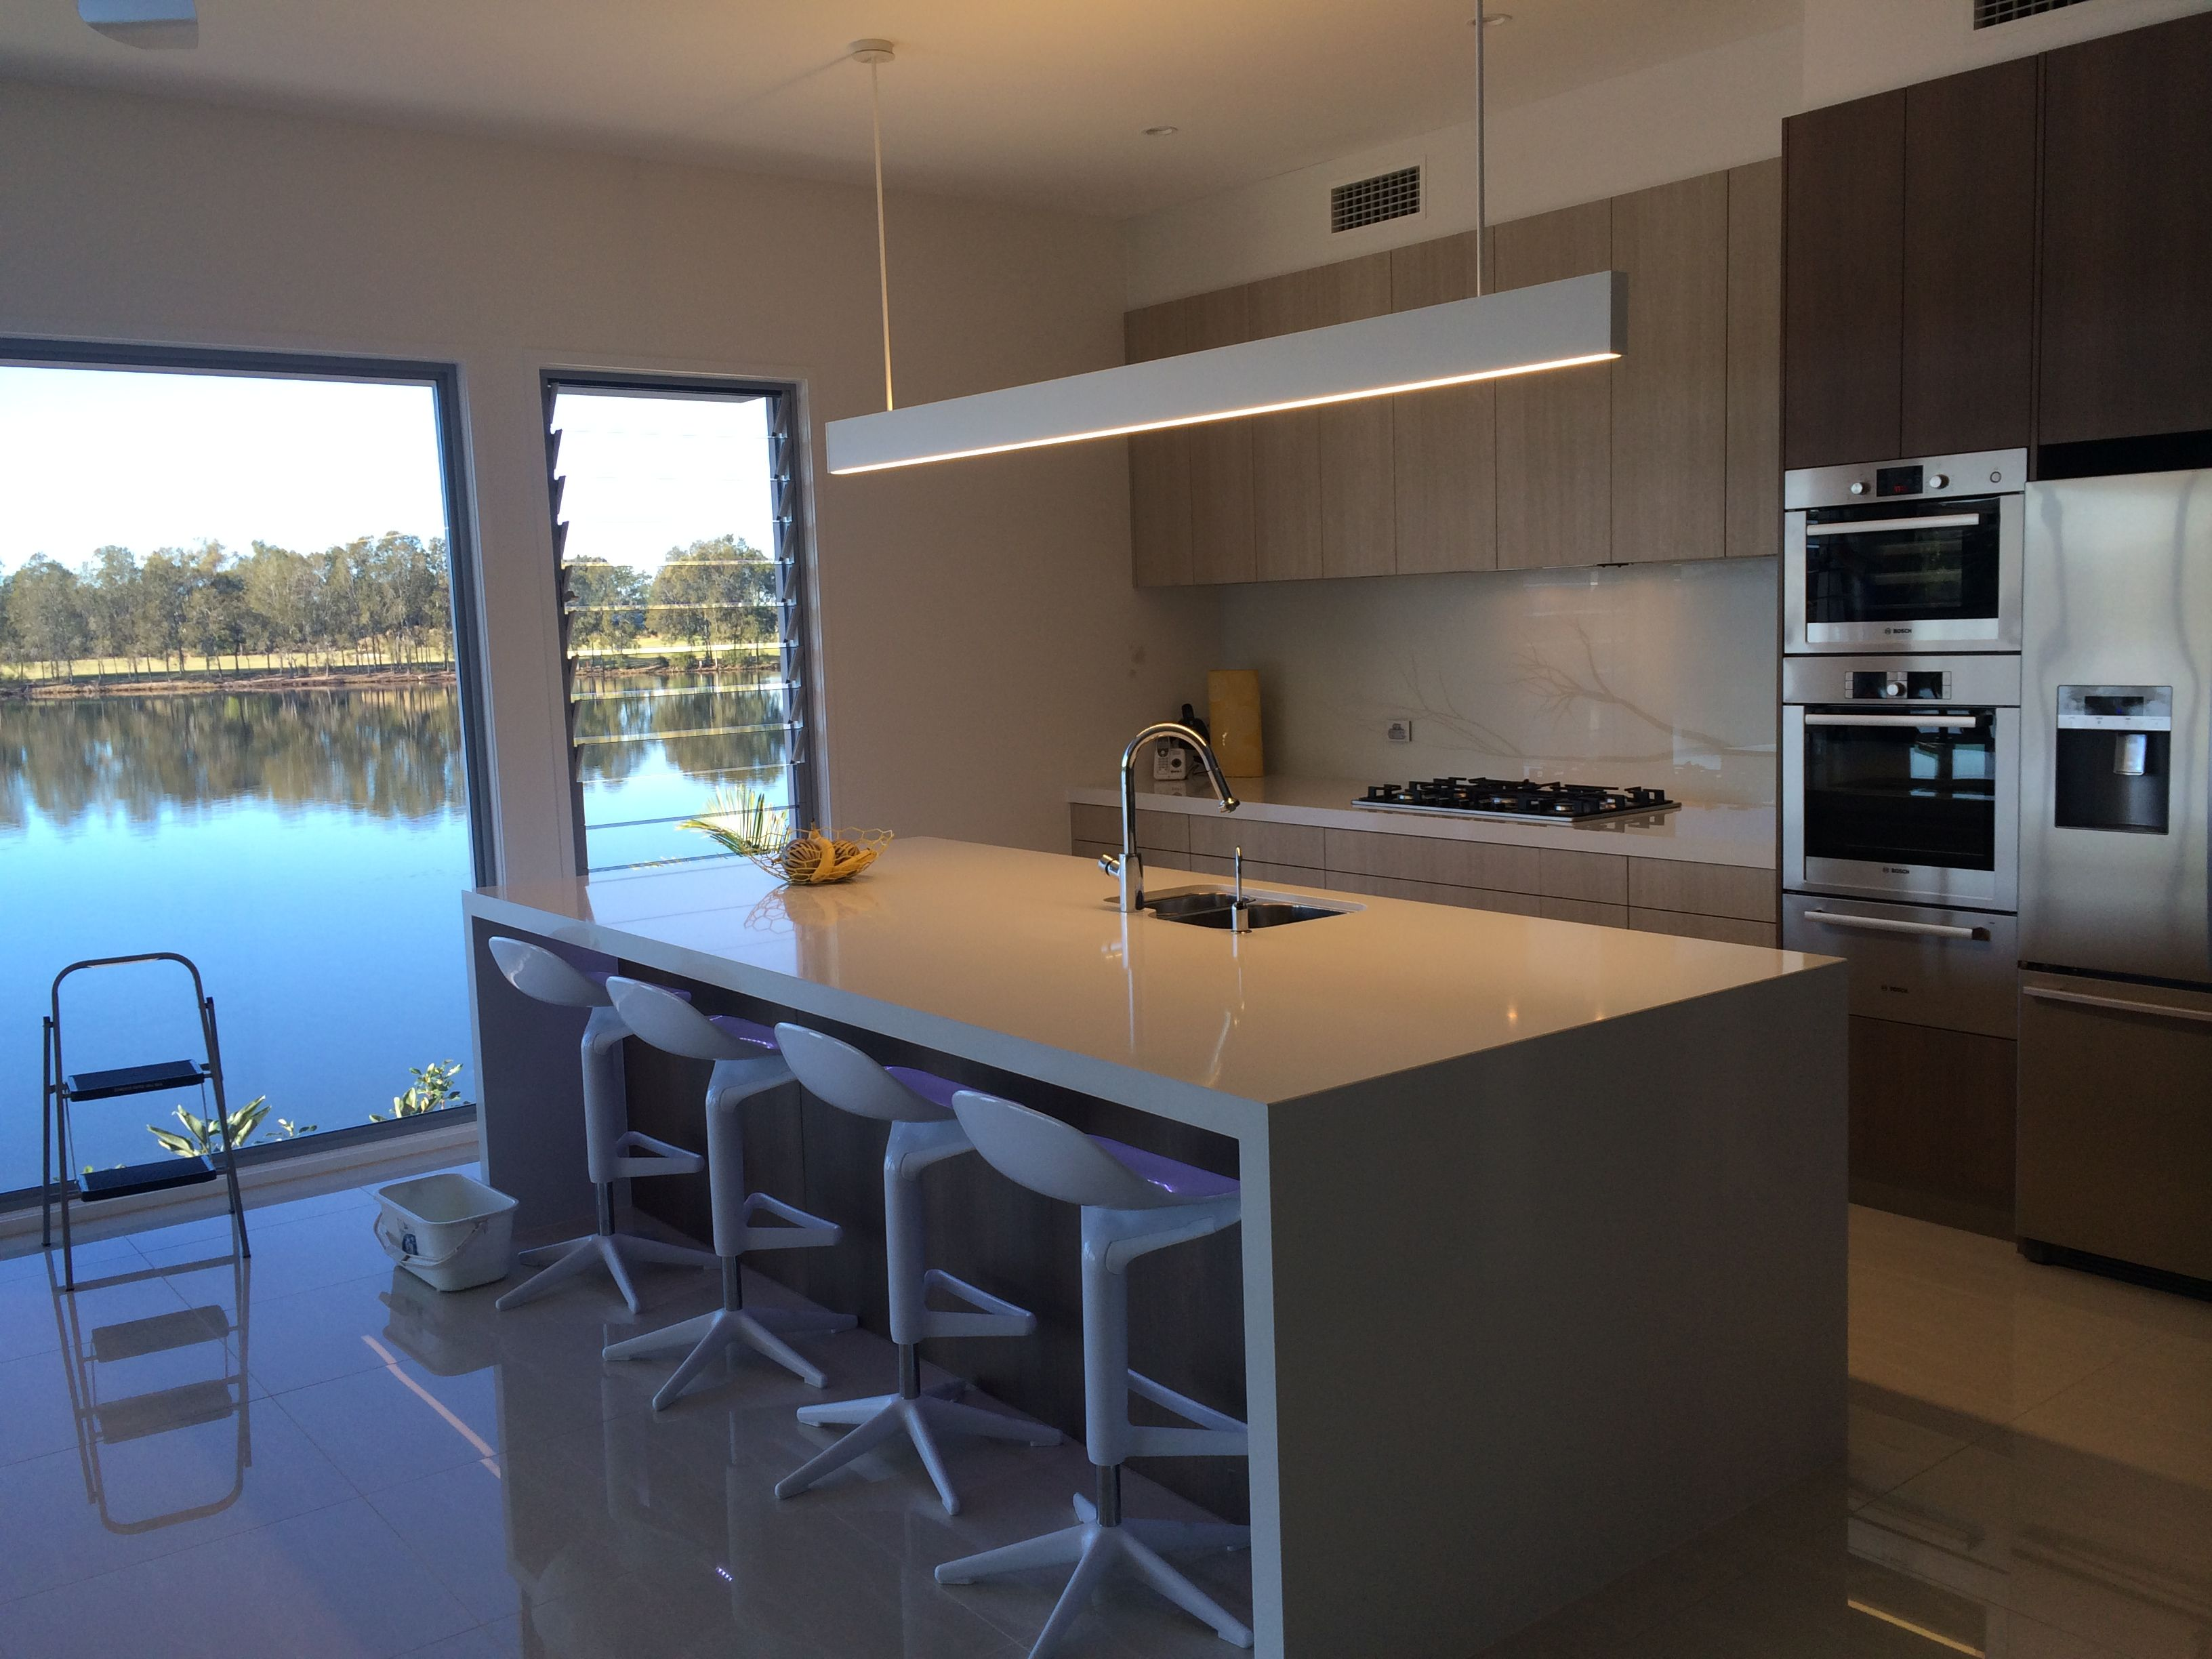 Darkon Slim H Pro, Updown Kitchen Bench Lighting Wwwladgroupcom